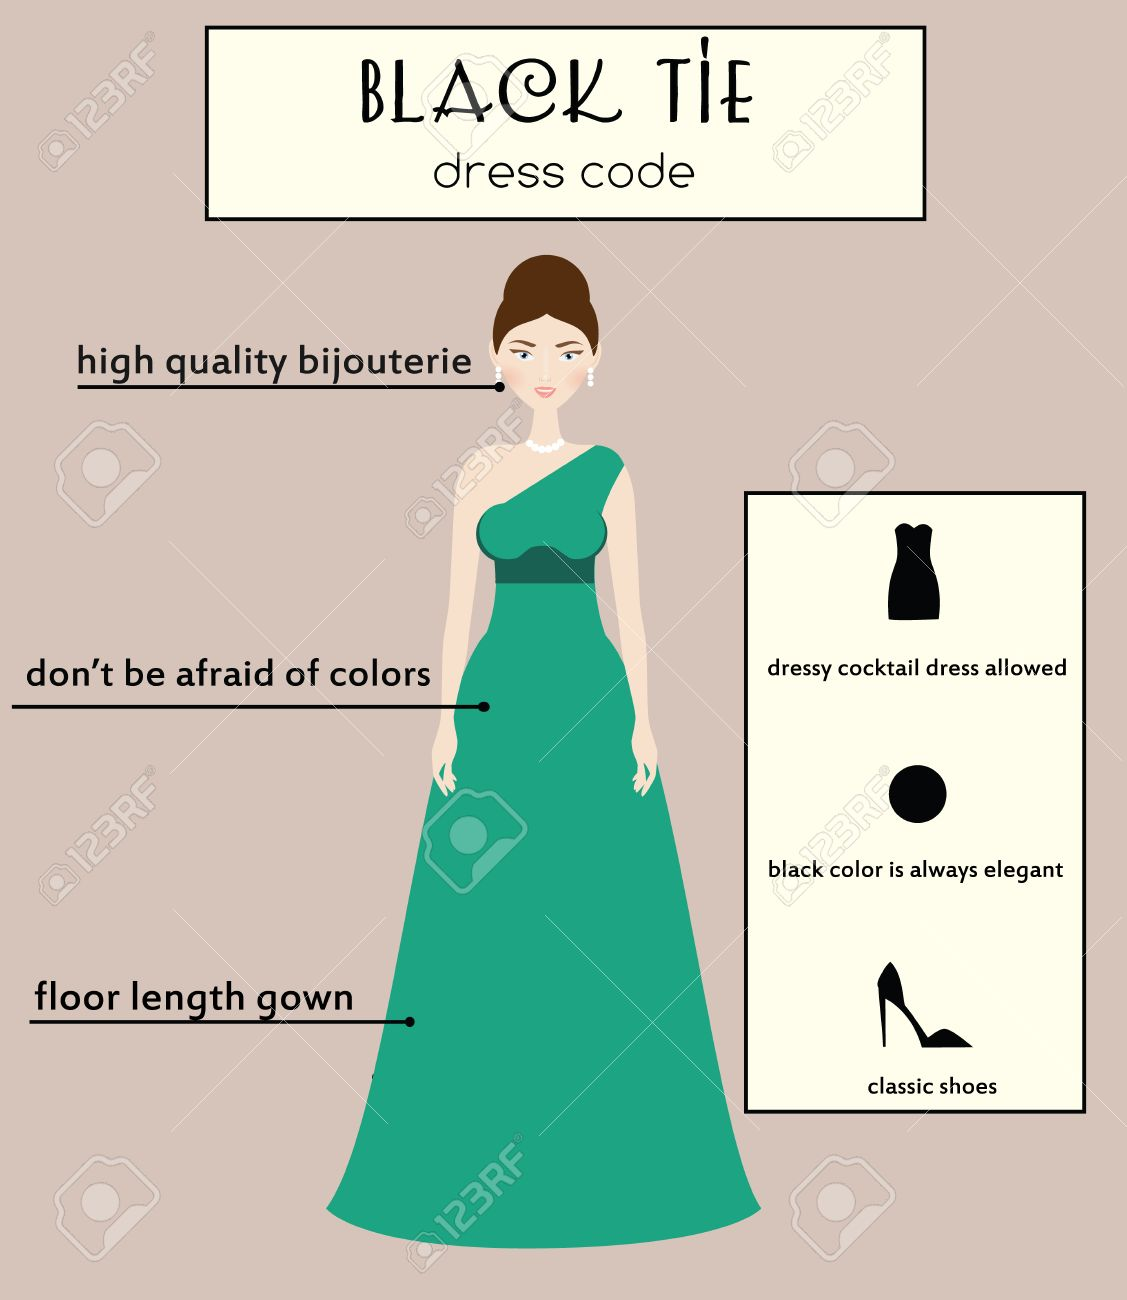 c7c9597f08a9a Vector - Woman dress code infographic. Black tie type. Female in evening  long gown dress